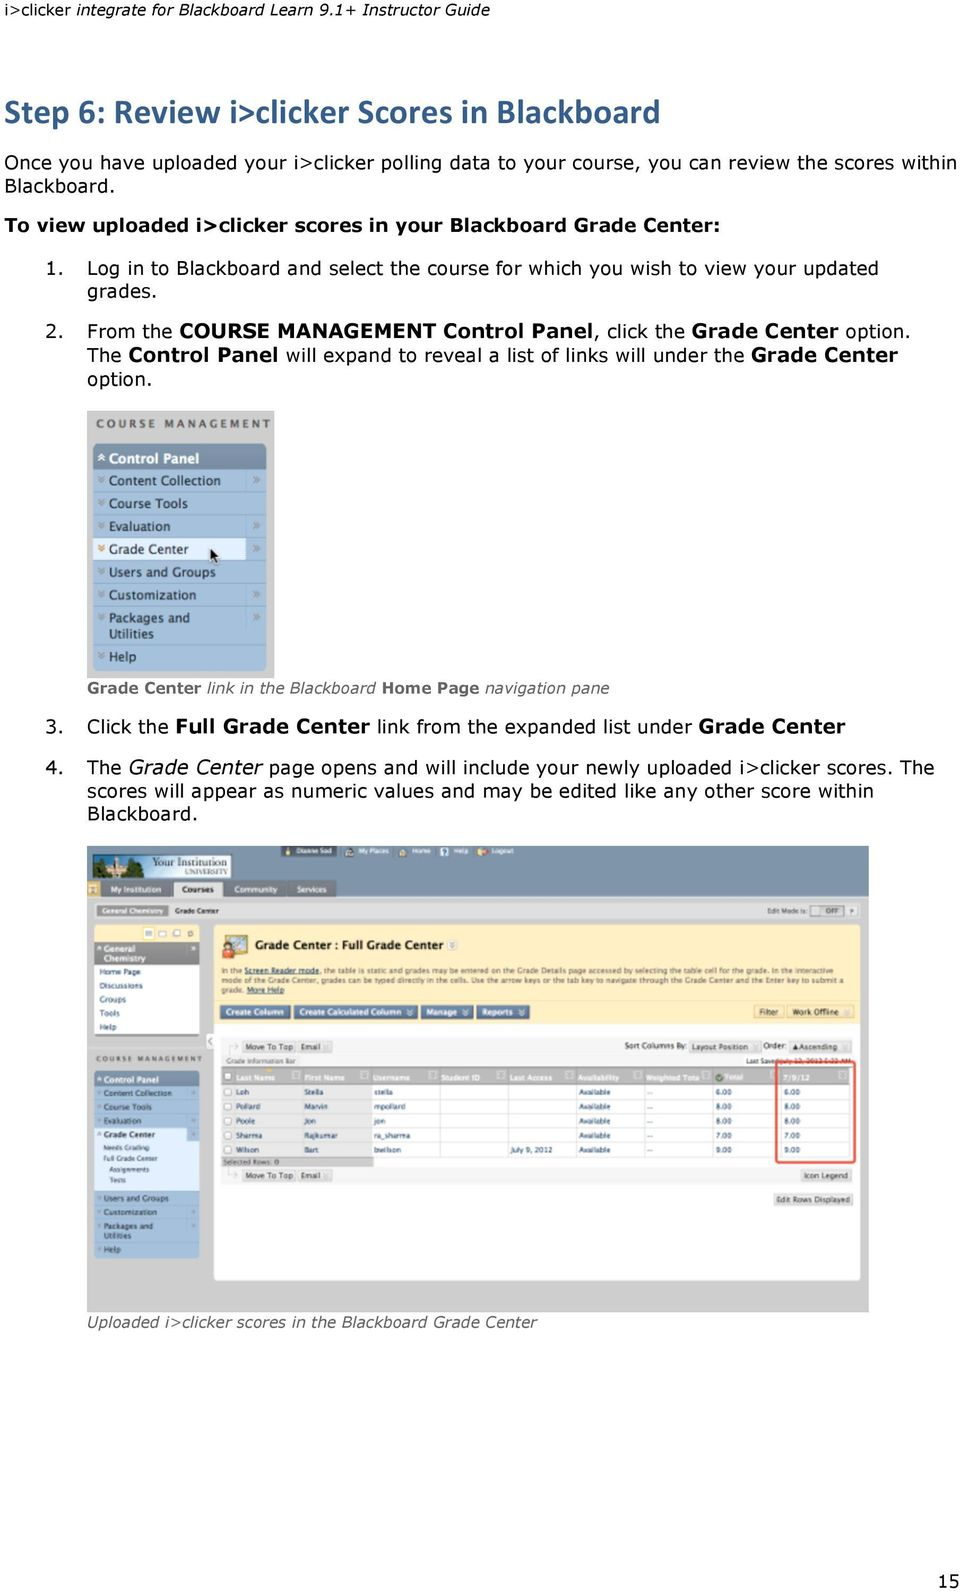 From the COURSE MANAGEMENT Control Panel, click the Grade Center option. The Control Panel will expand to reveal a list of links will under the Grade Center option.